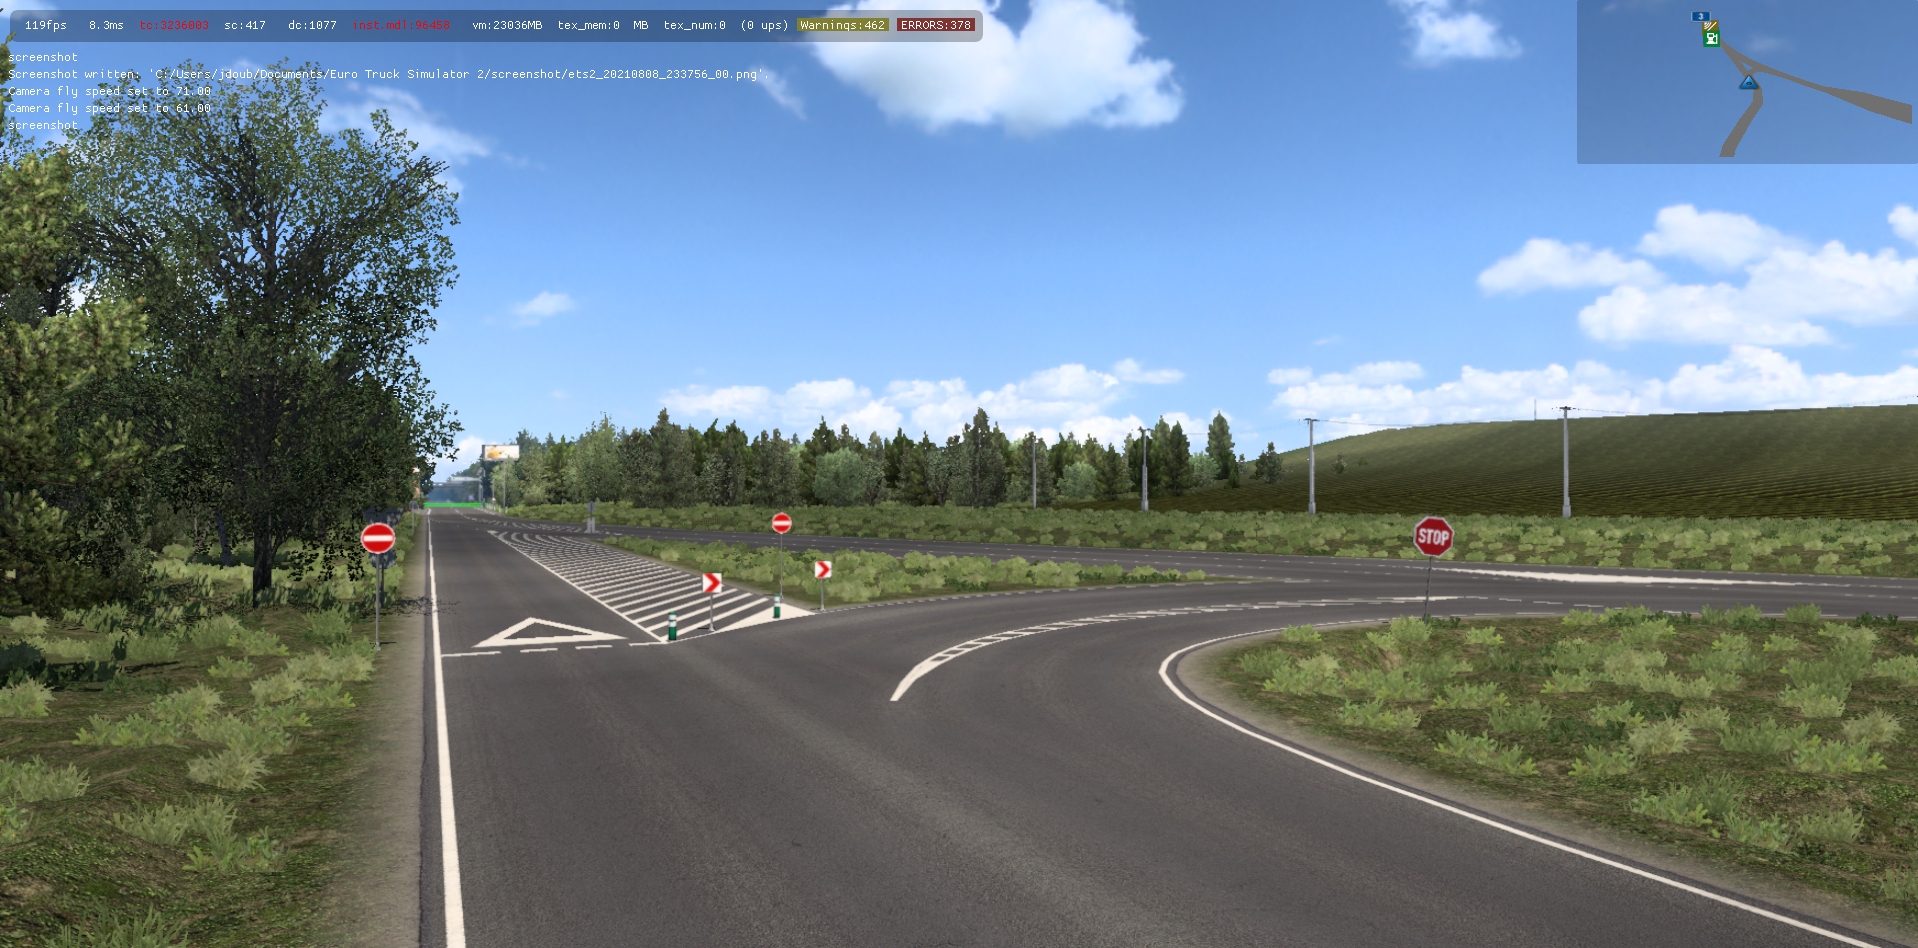 ets2_20210808_233804_00.png